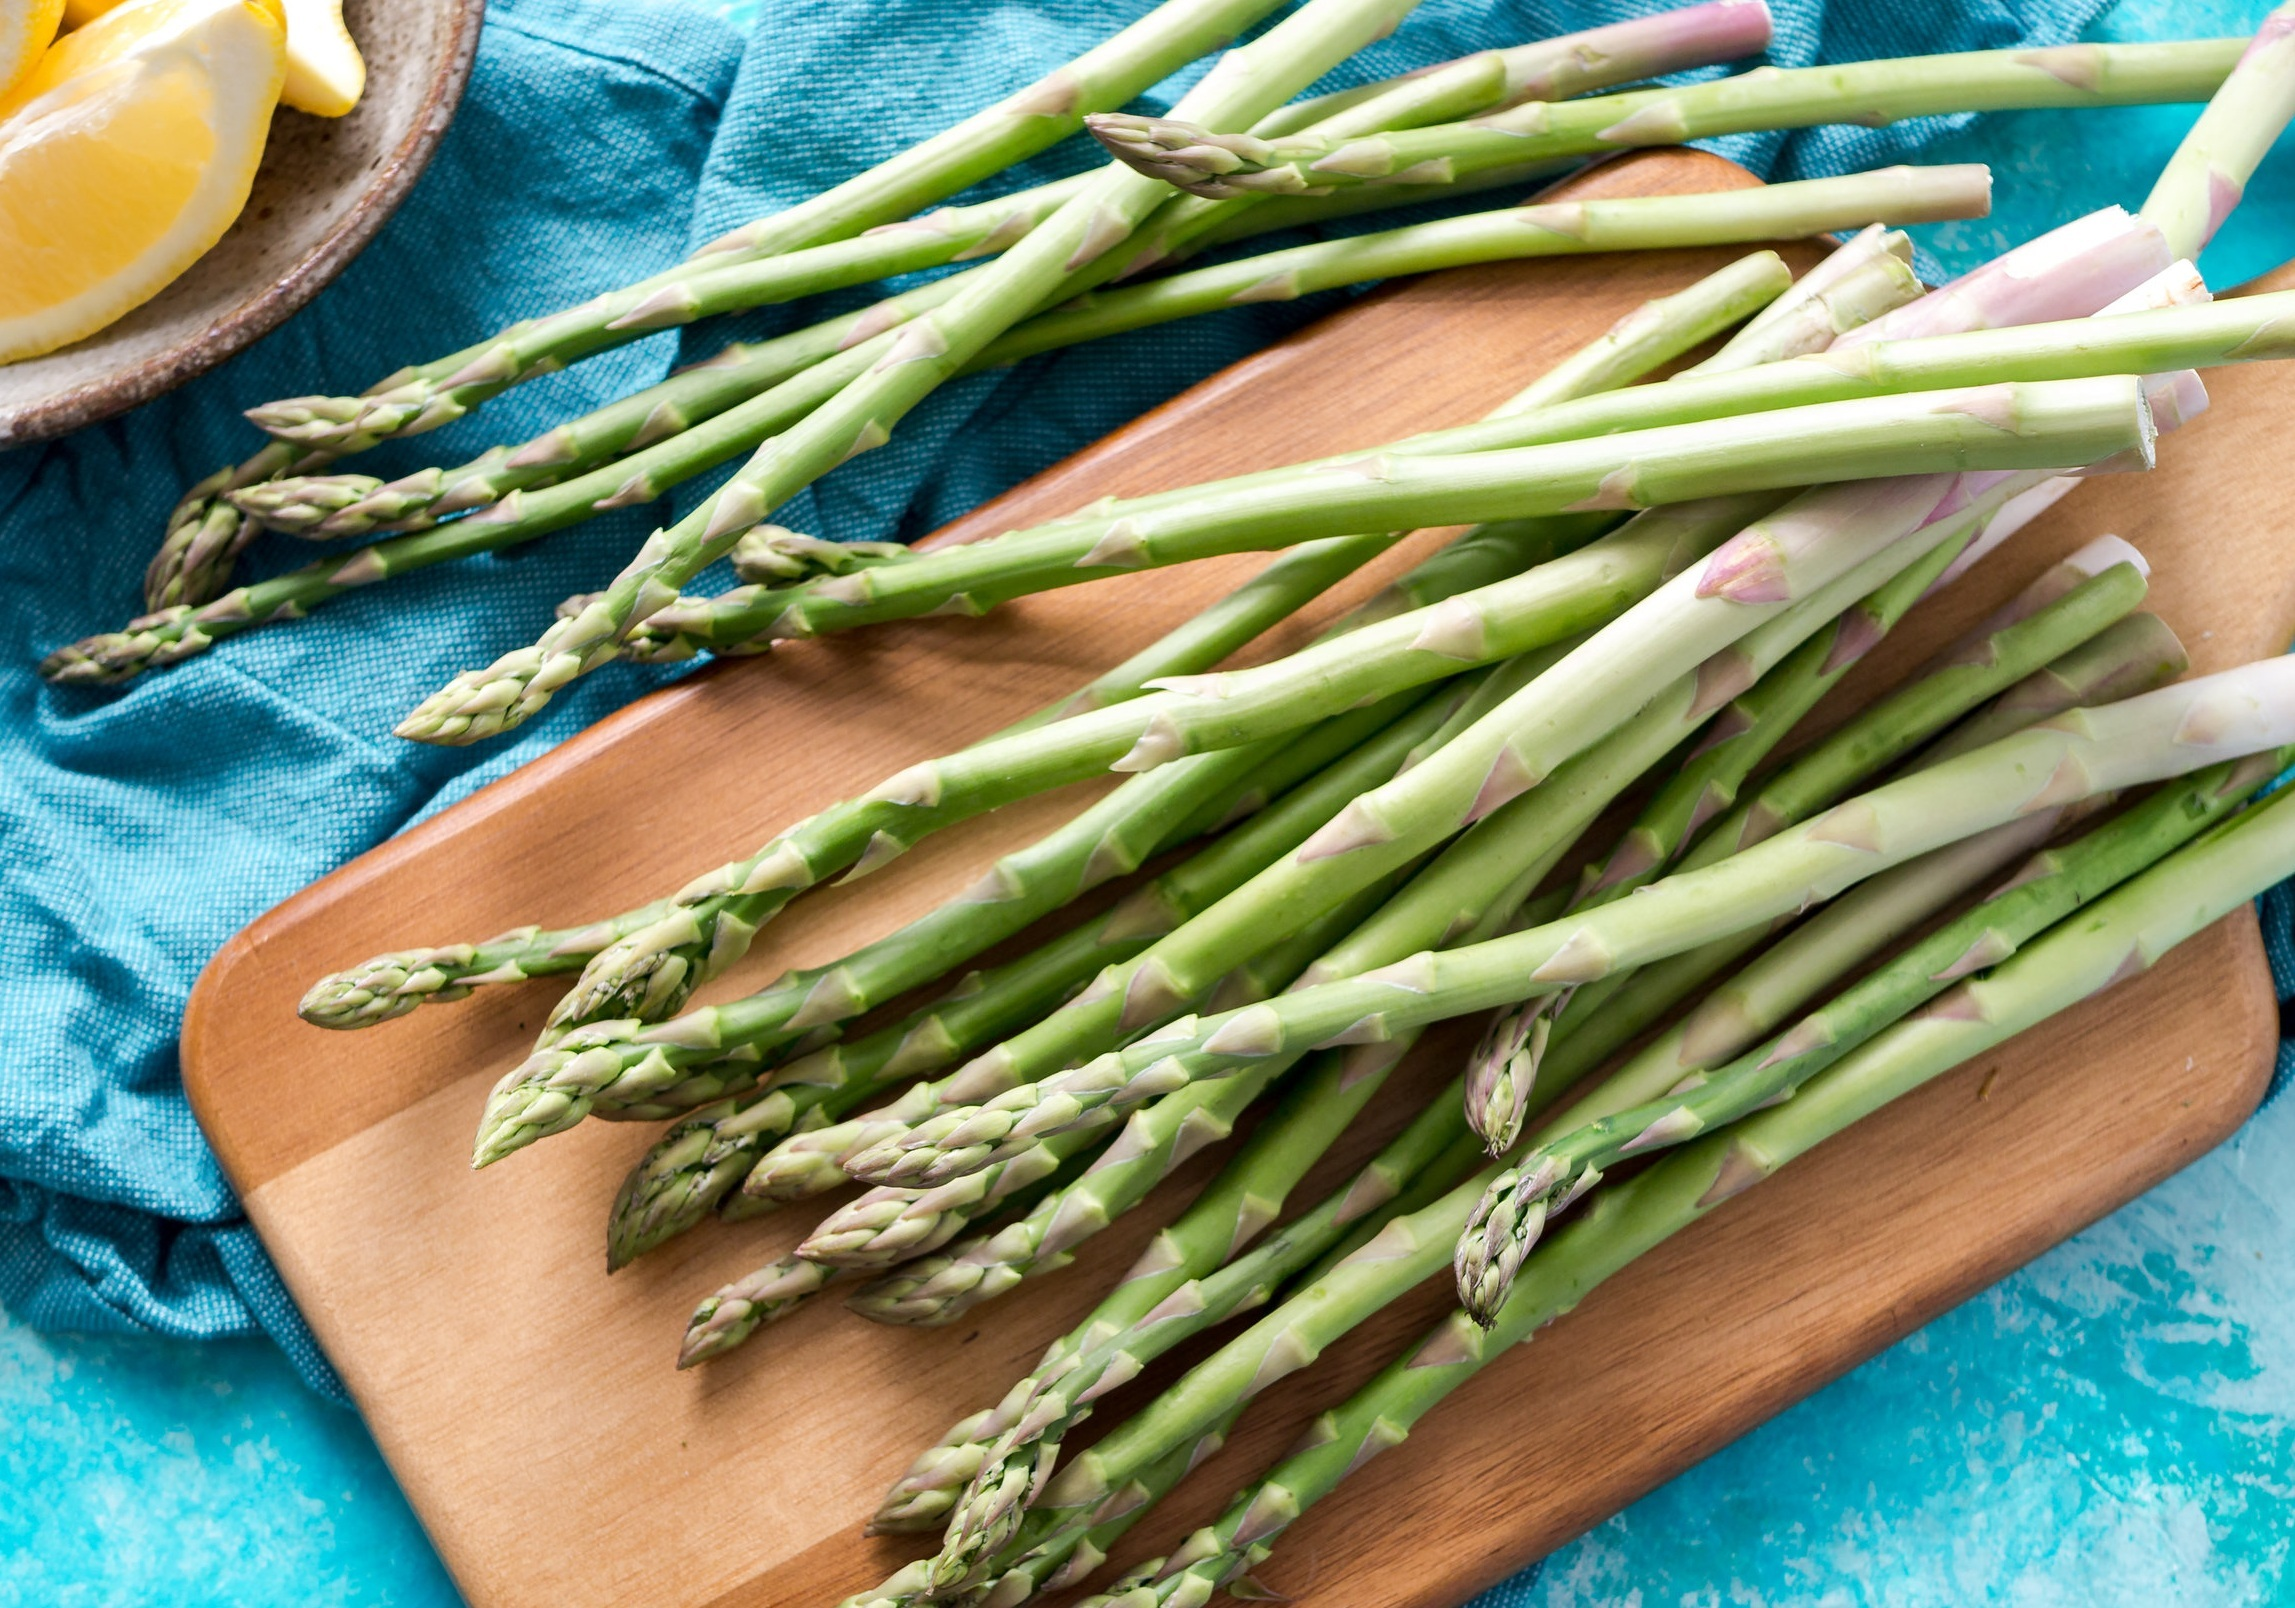 asparagus - 90 percent of conventional asparagus samples had no detectable pesticide residues.No more than three pesticides were detected on any conventional asparagus sample.